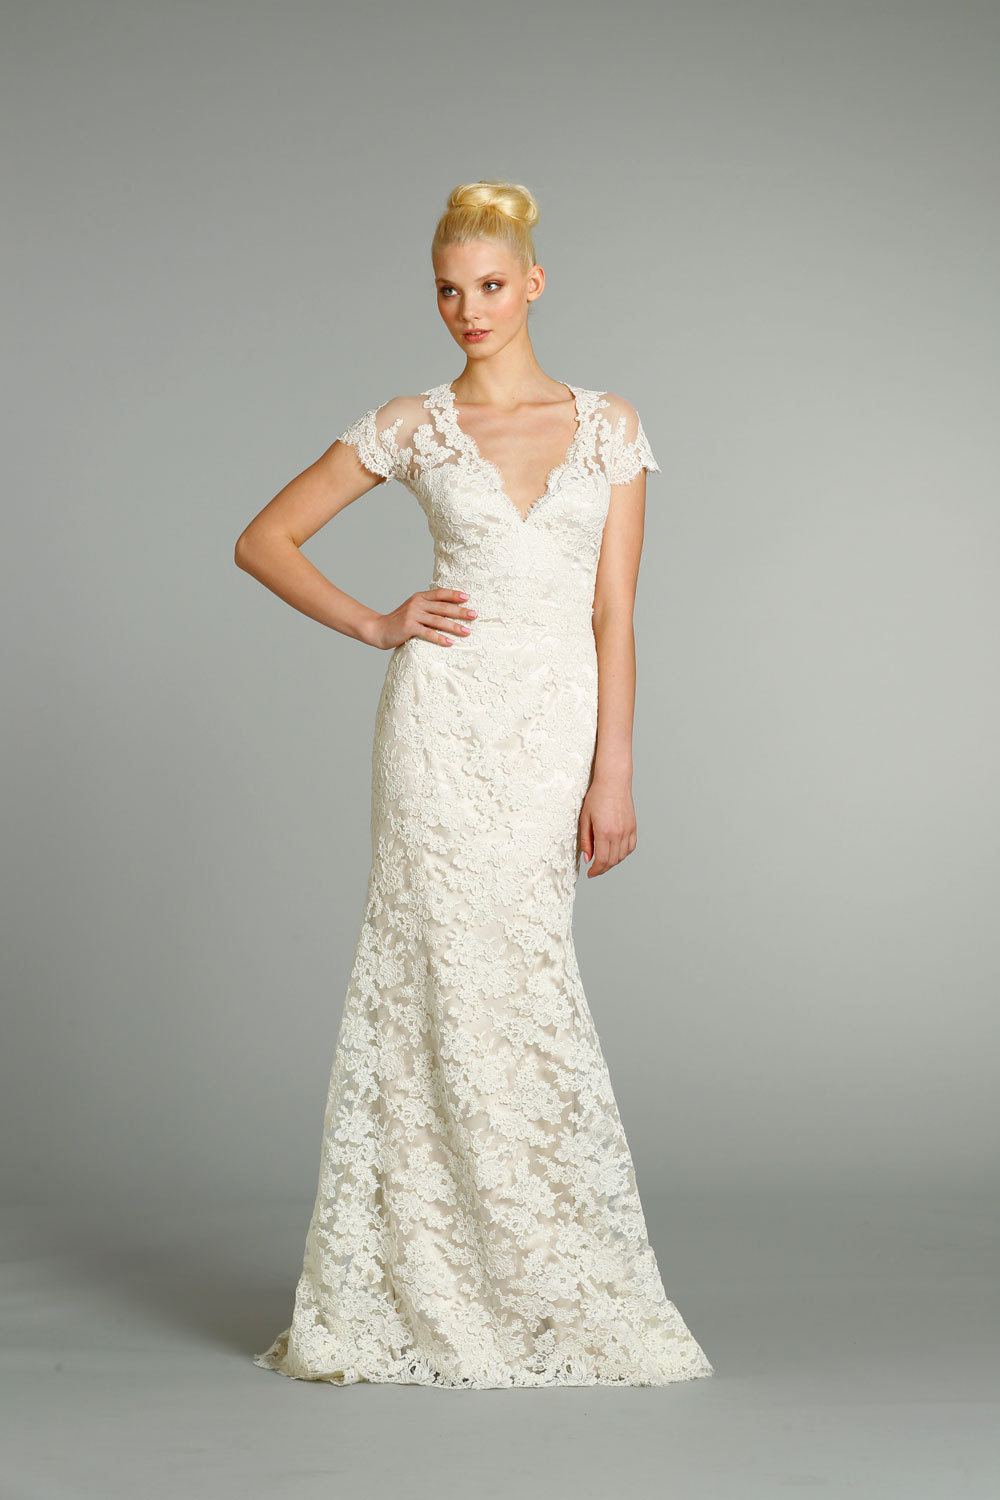 Fall-2012-wedding-dresses-jlm-couture-bridal-jim-hjelm-8252_front.full